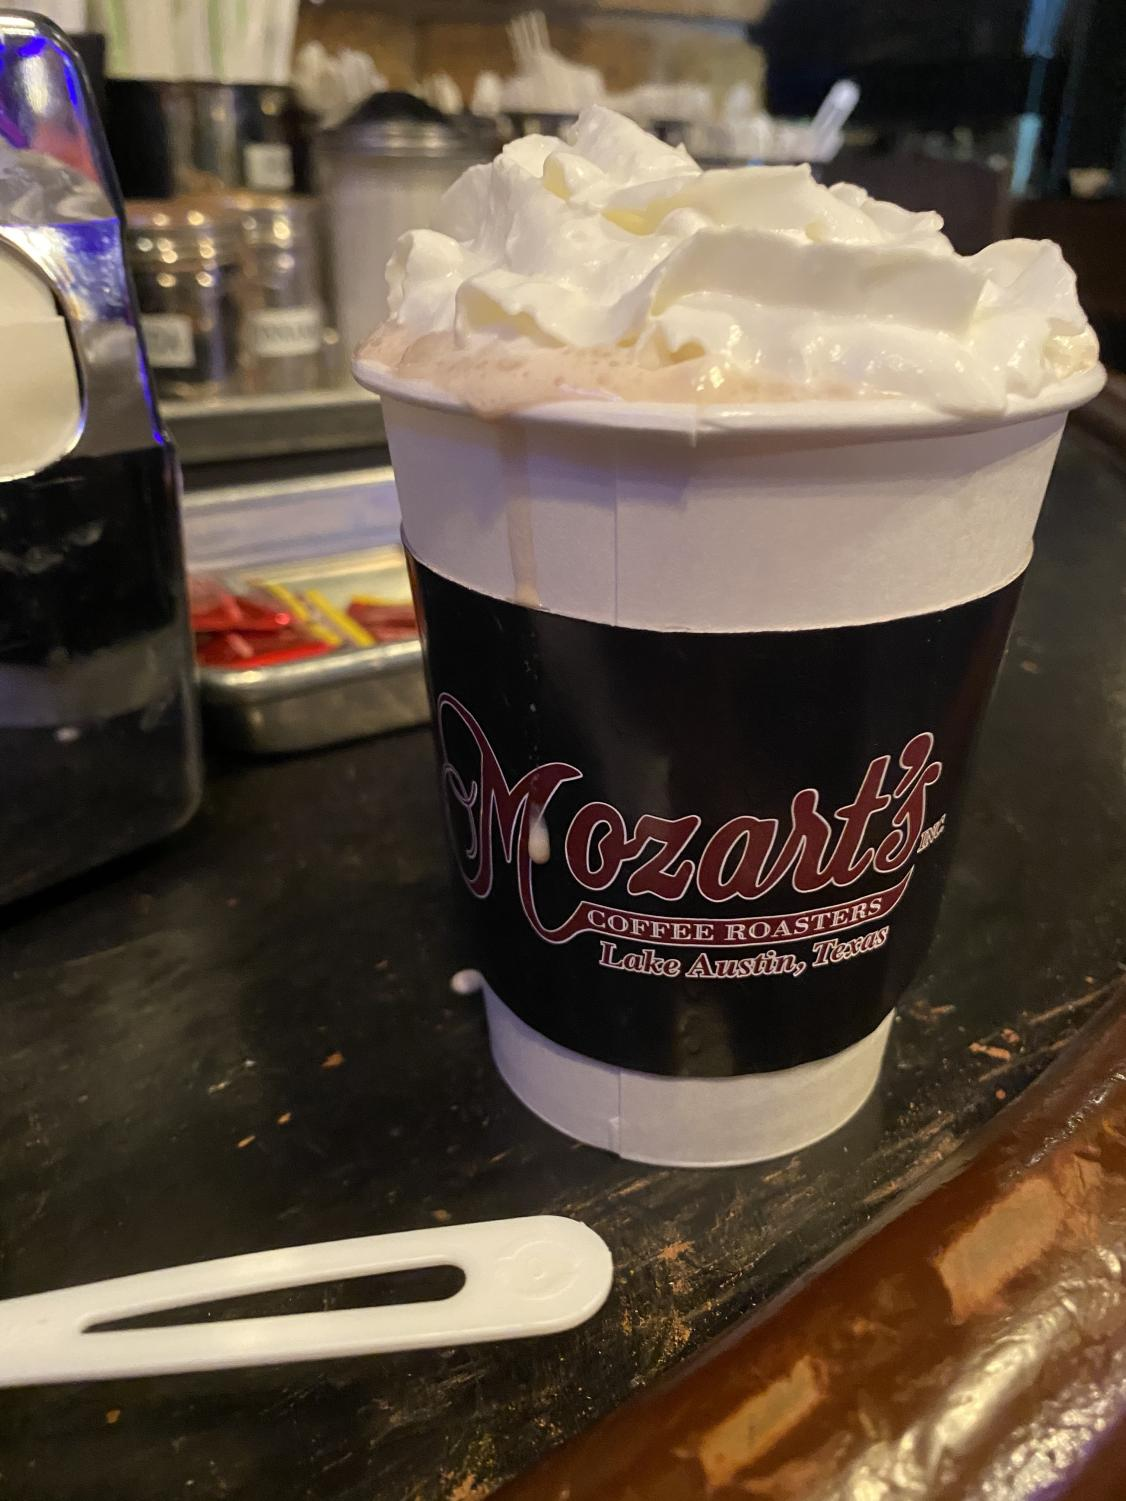 The+classic+hot+chocolate+is+topped+with+marshmallows+and+whipped+cream%2C+and+has+a+delightful+flavor.